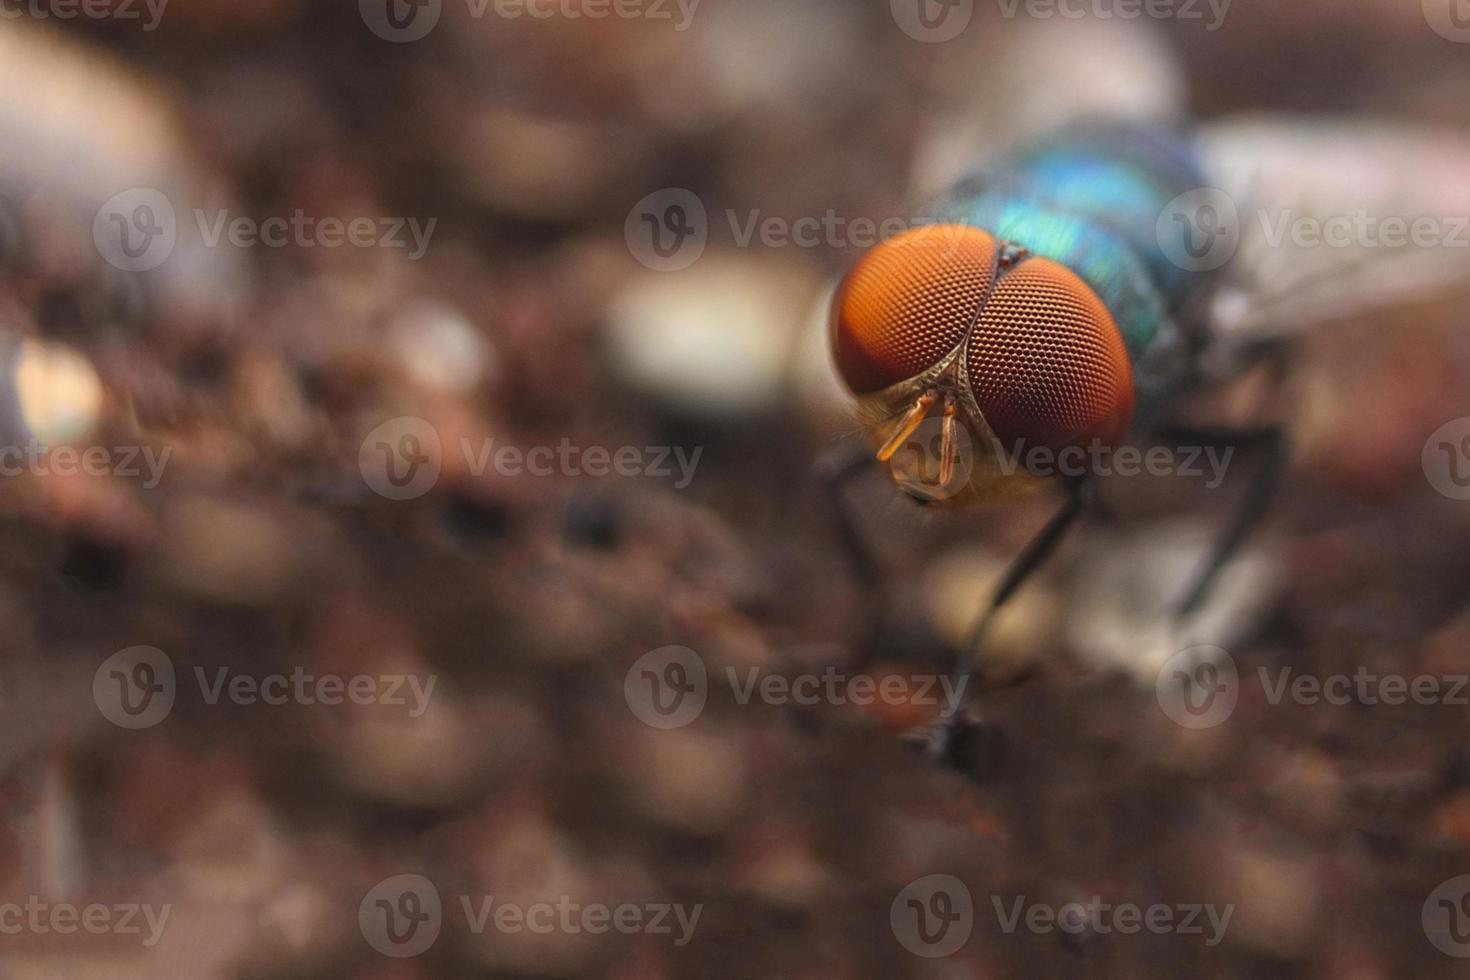 The Common Housefly (Musca Domestica) photo